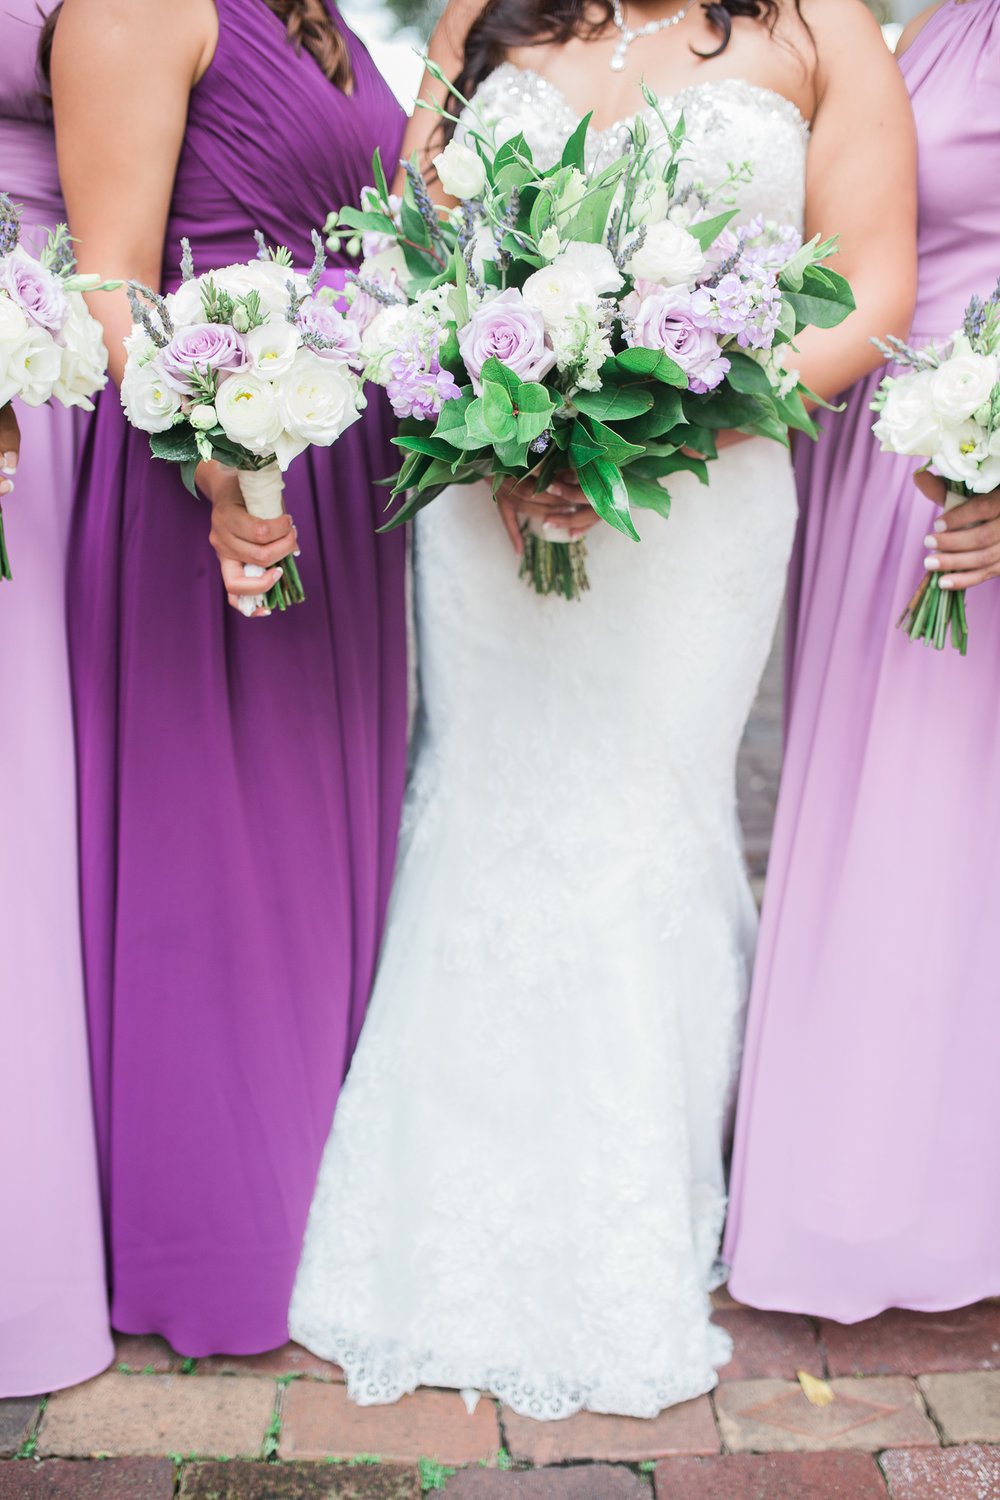 Bride and bridesmaids hold flowers wearing purple dresses at Casa Feliz